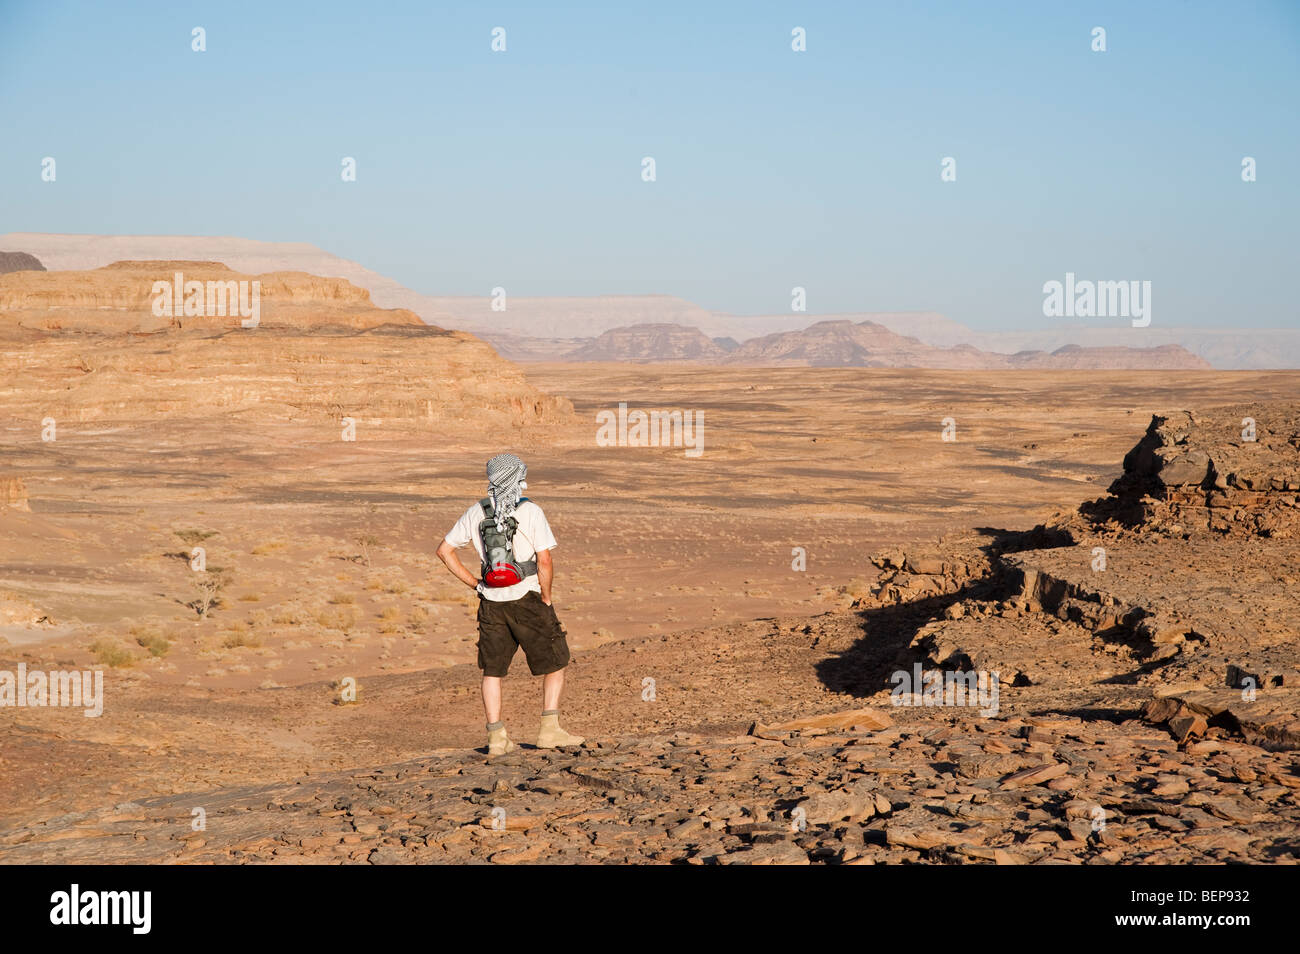 A man looking across the desert landscape in Sinai Egypt - Stock Image